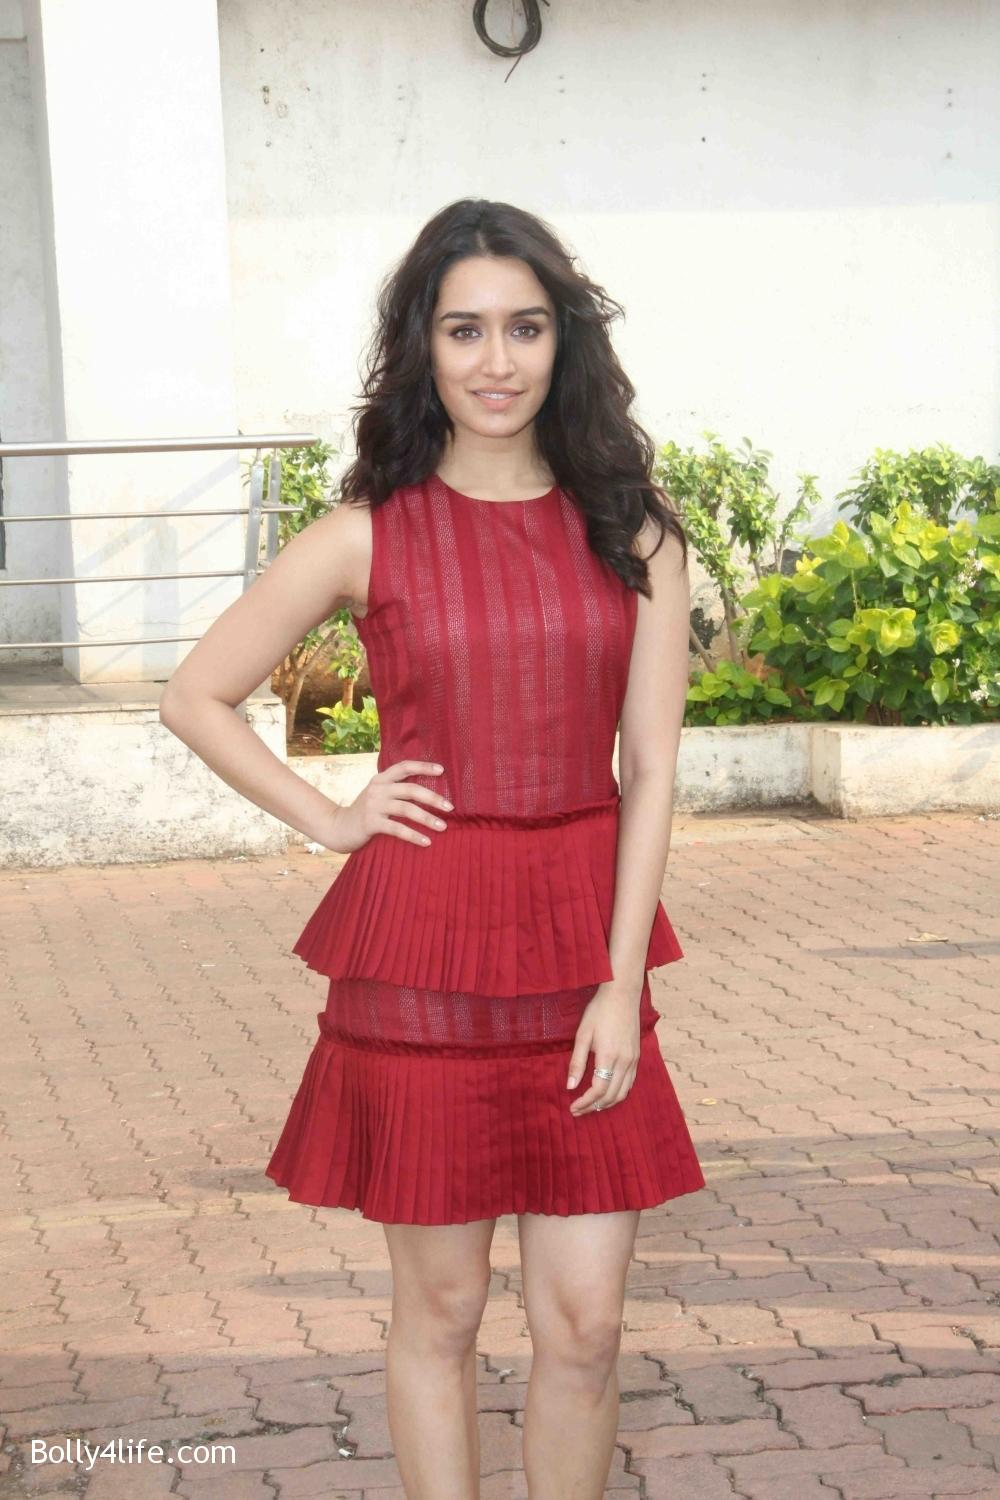 Shraddha-Kapoor-during-the-promotion-of-film-Ok-Jaanu-on-the-sets-Star-Plus-singing-reality-show-Dil-Hai-Hindustani-4.jpg